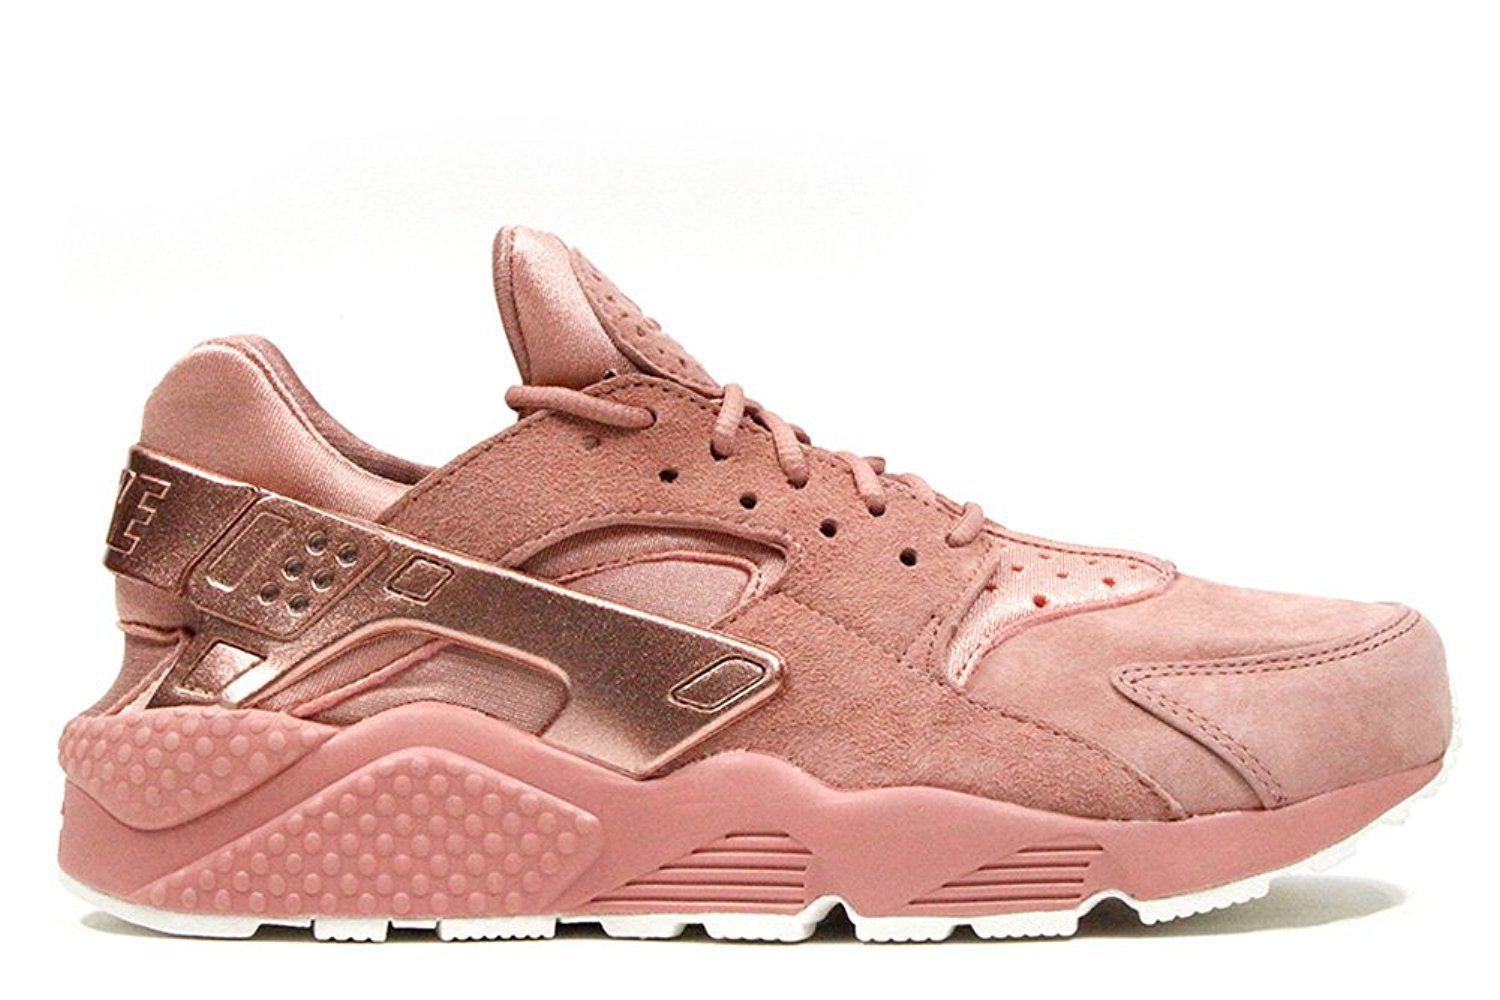 87239780afea Galleon - NIKE Air Huarache Run Premium Men s Running Shoes Rust Pink MTLC  Red Bronze-Sail 704830-601 (12 D(M) US)